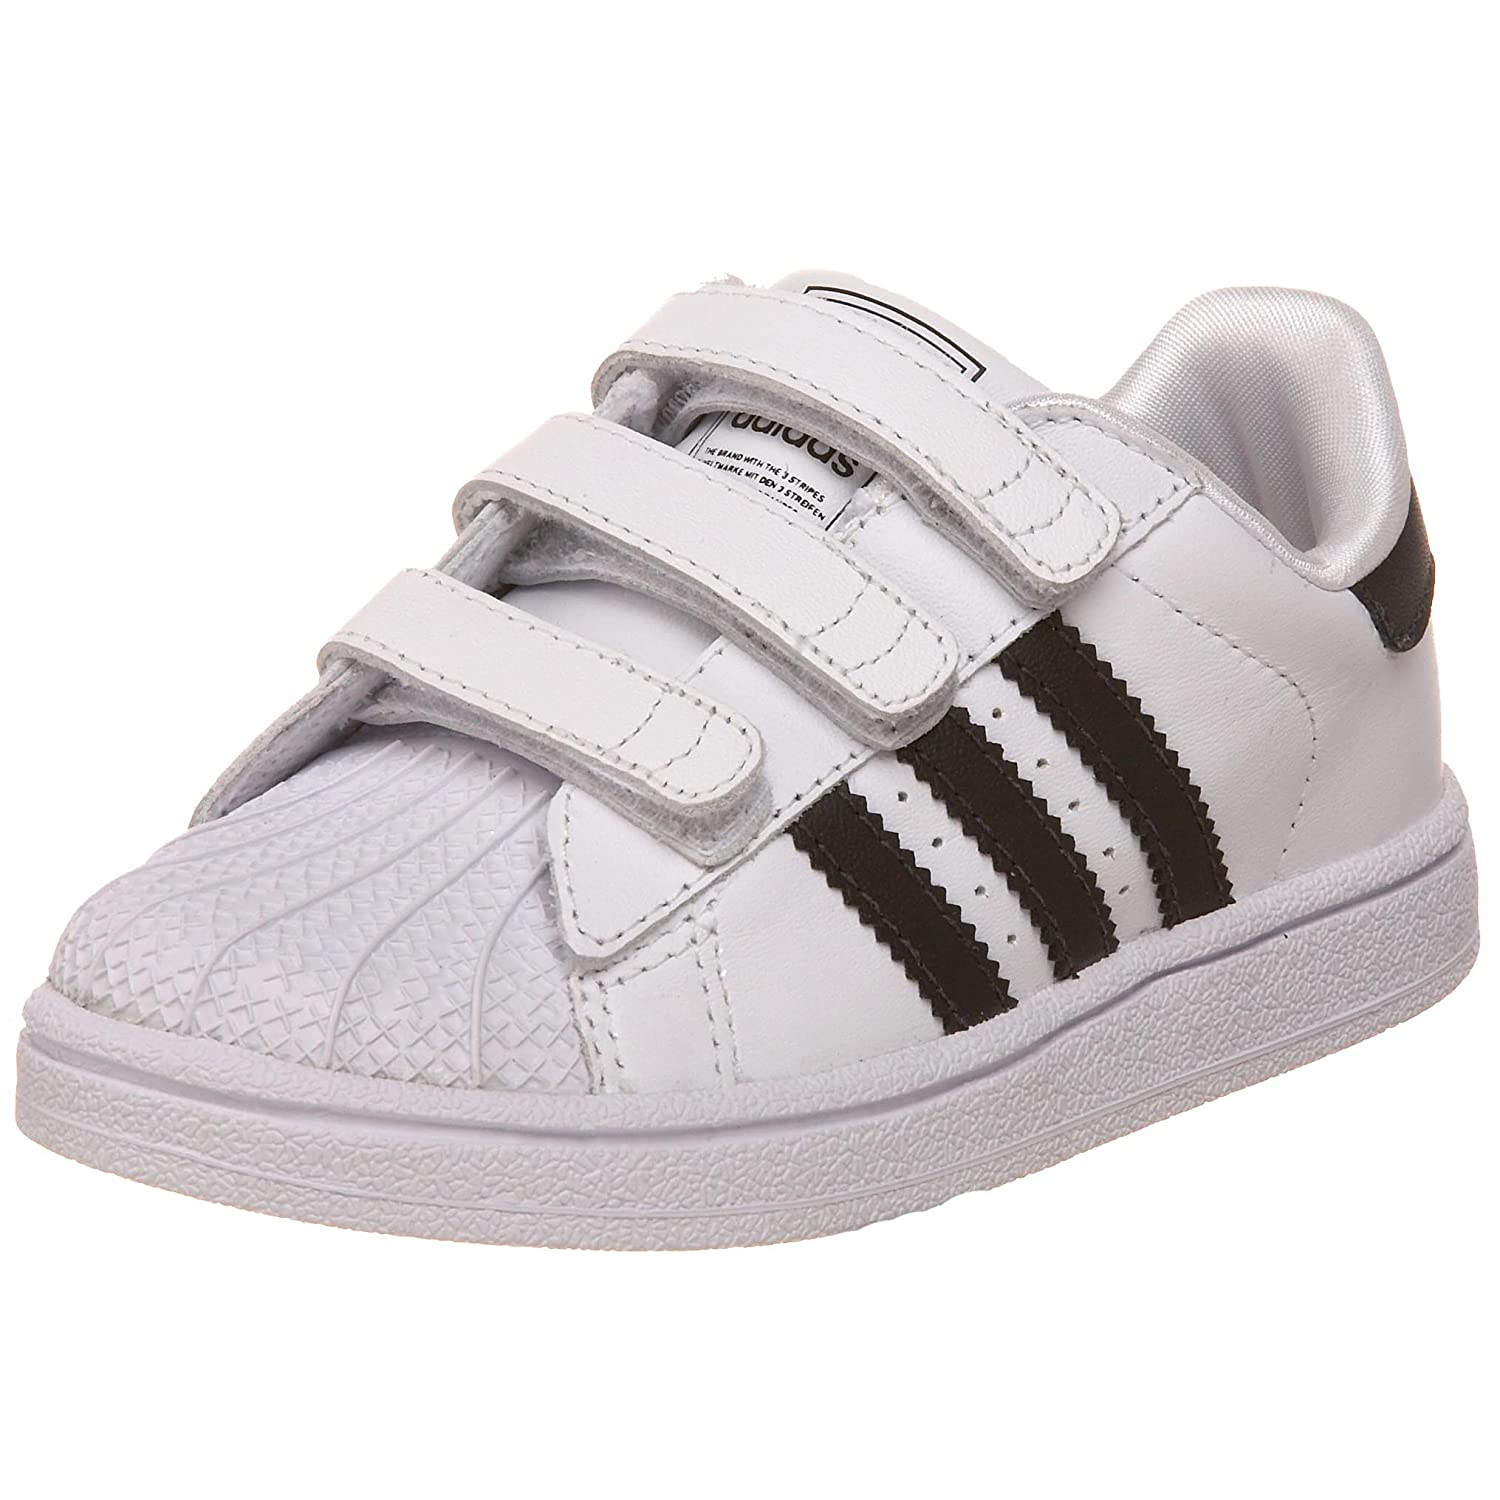 adidas superstar comfort